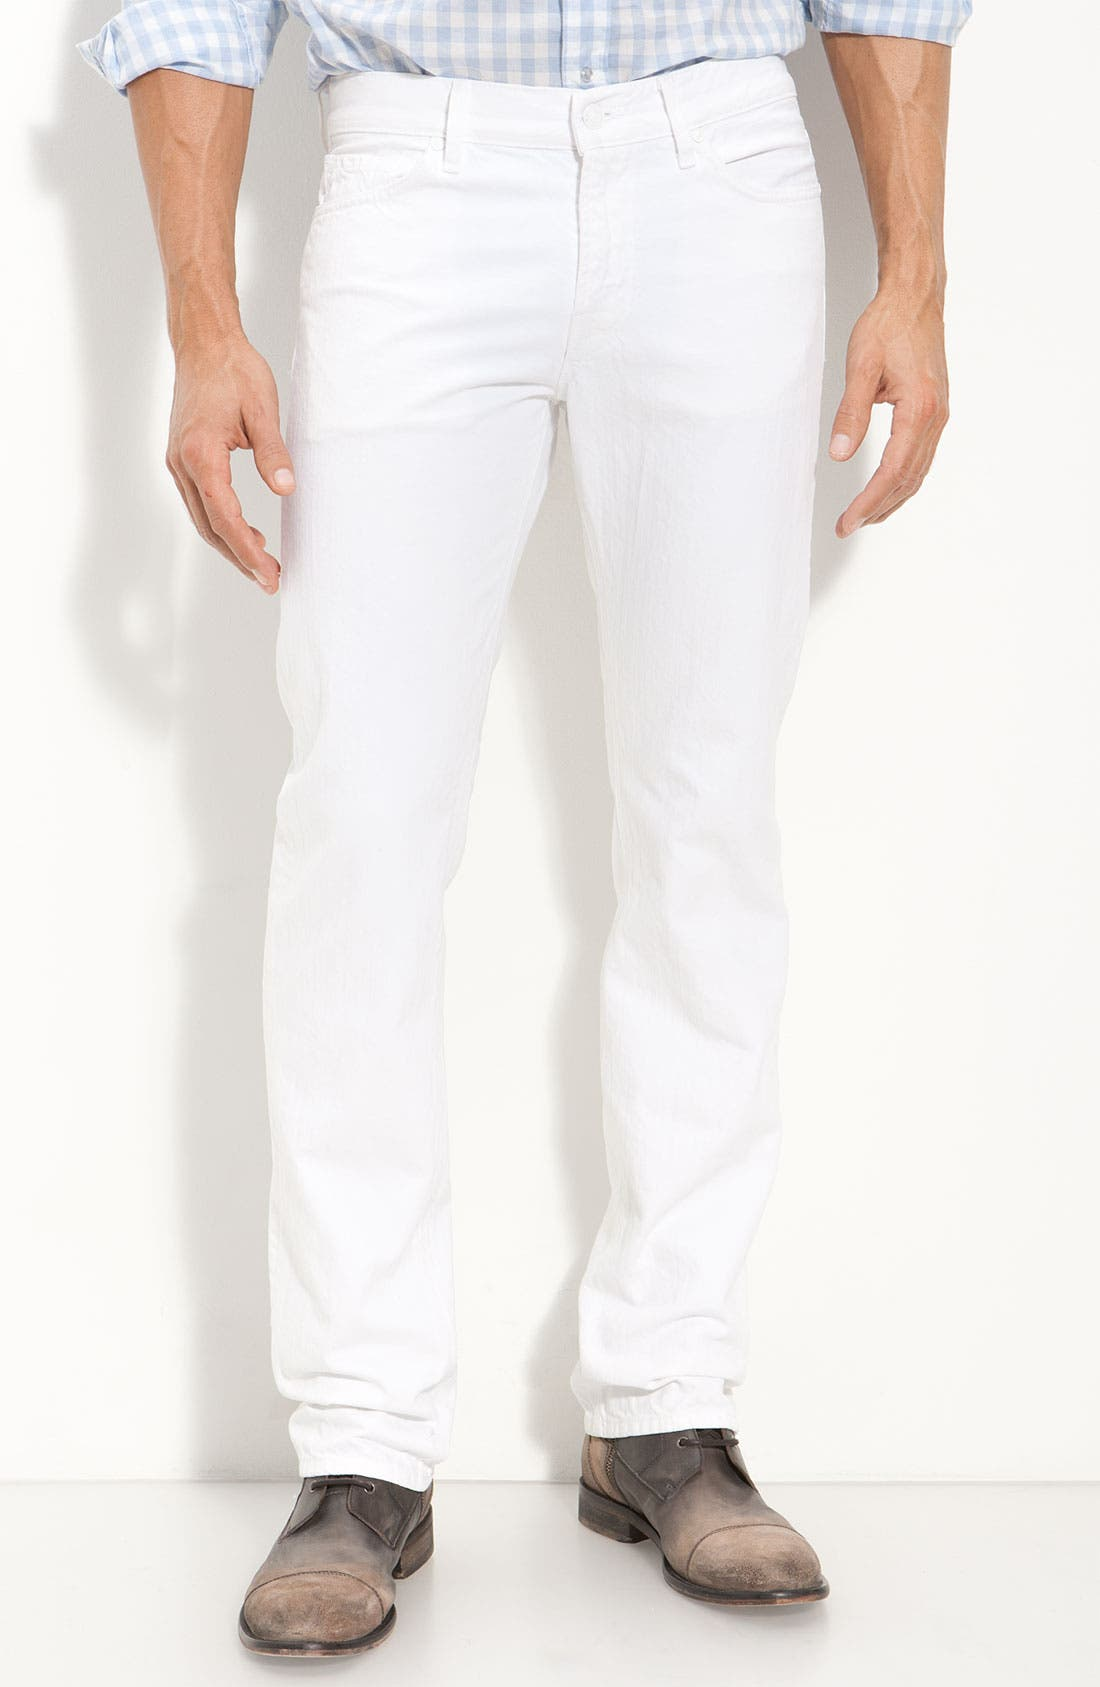 Alternate Image 1 Selected - 7 For All Mankind® 'Slimmy' Slim Straight Leg Jeans (Clean White Wash)